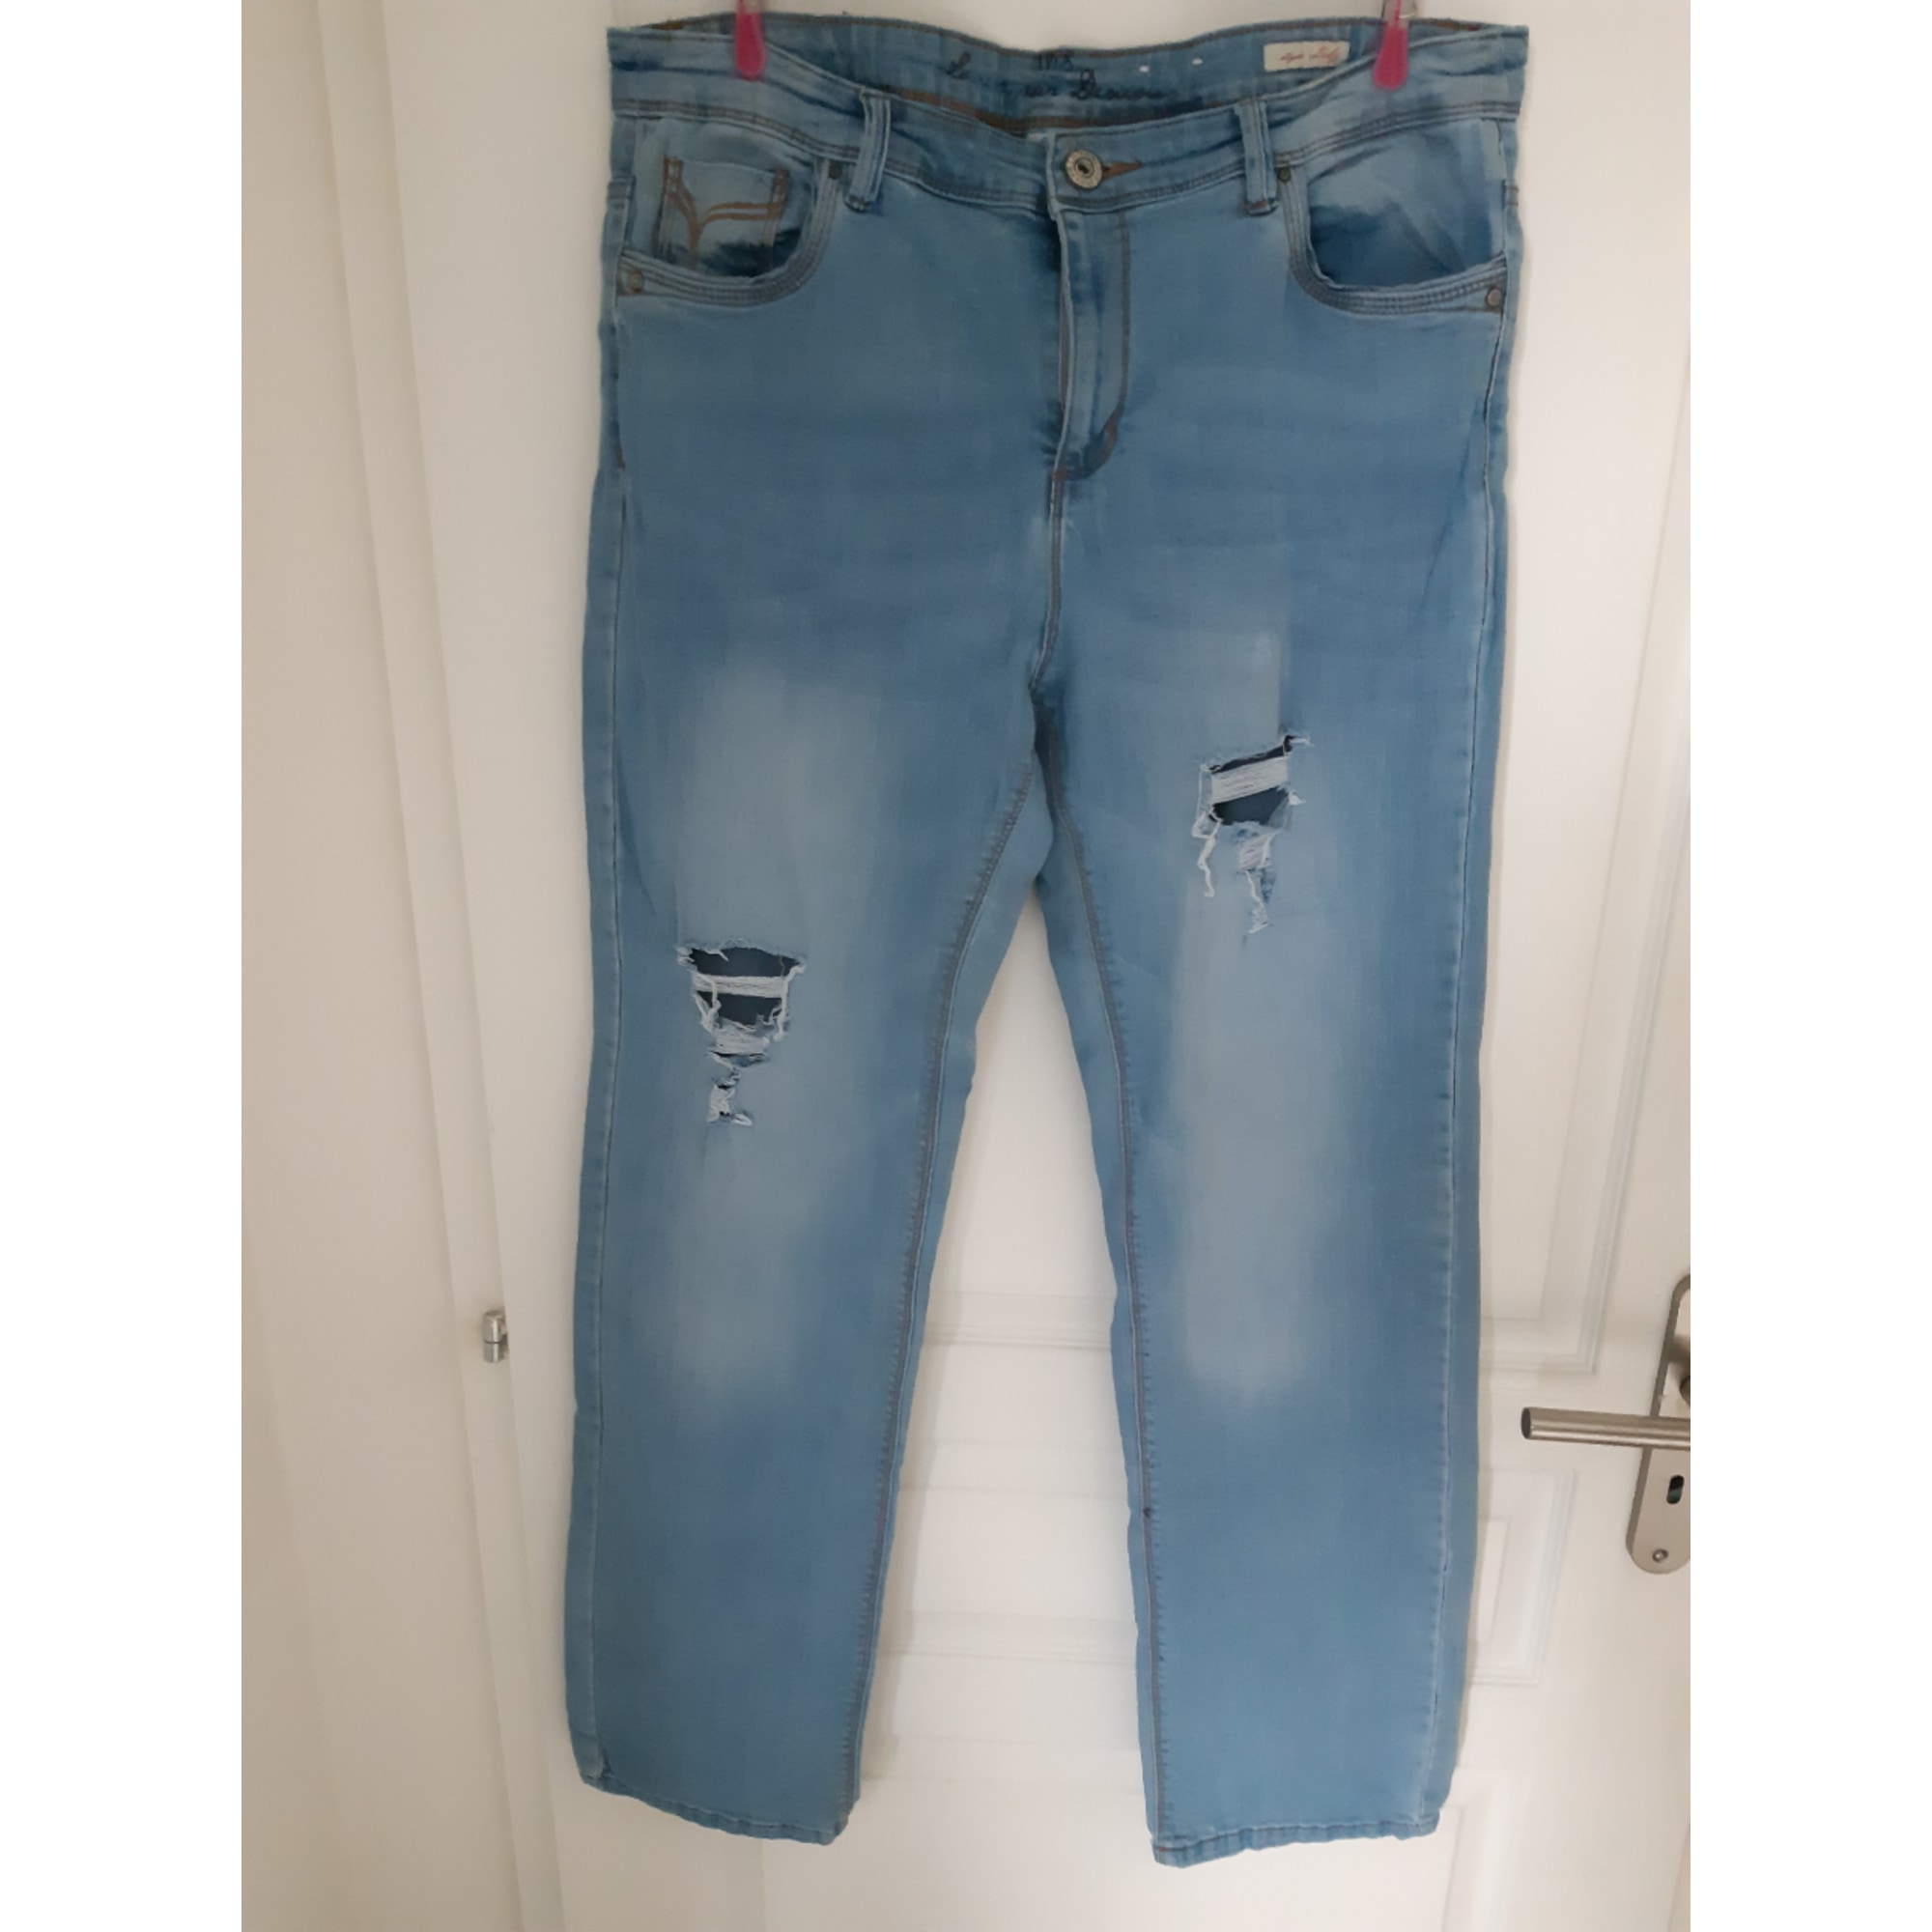 9bae05f1868 Jeans large